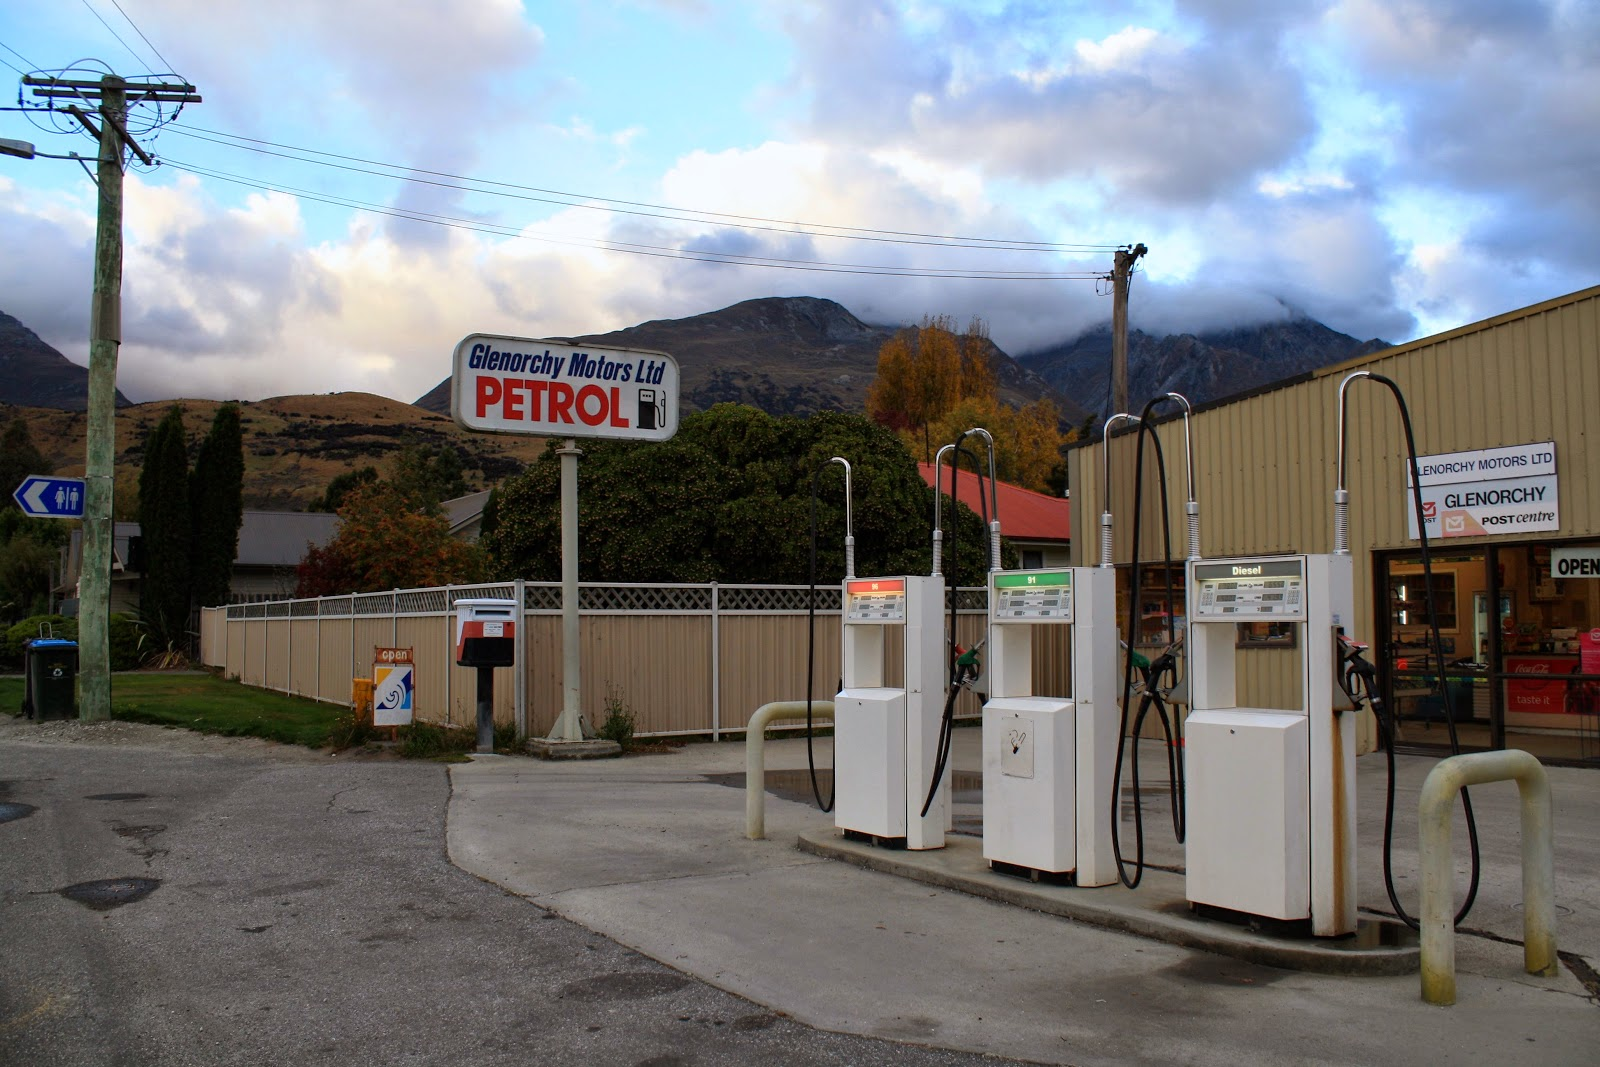 The Glenorchy petrol station (not ruins).